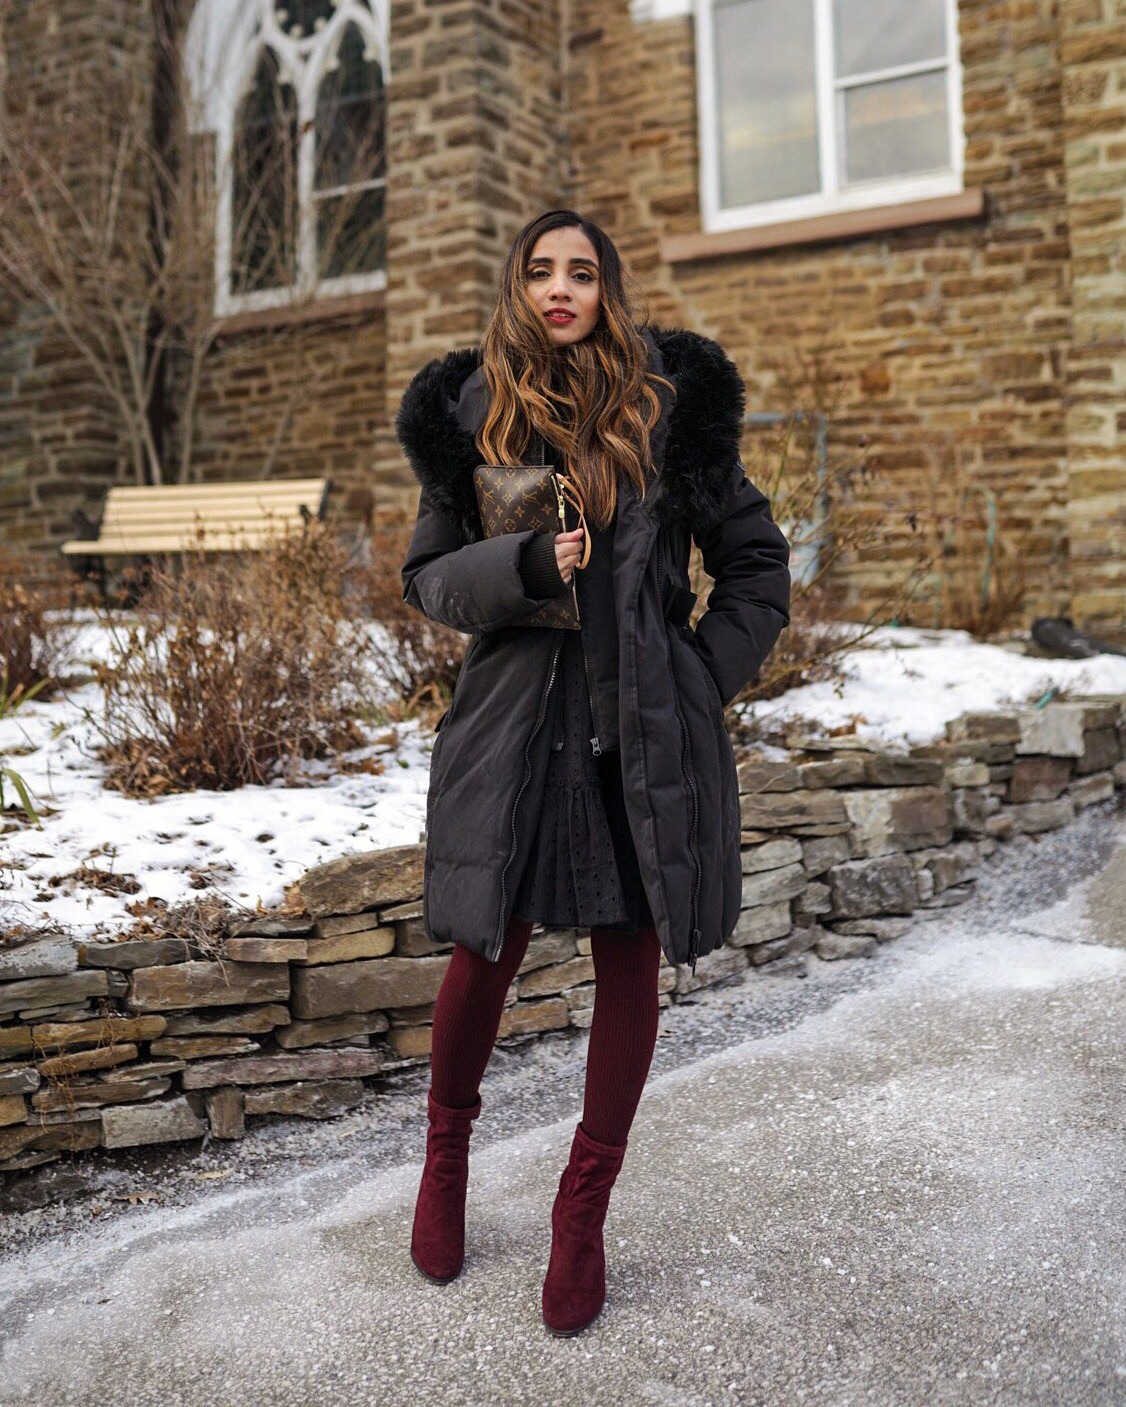 Top ShopBop Finds for Cold Winter Faiza Inam Winter Style Fashion 2020 1